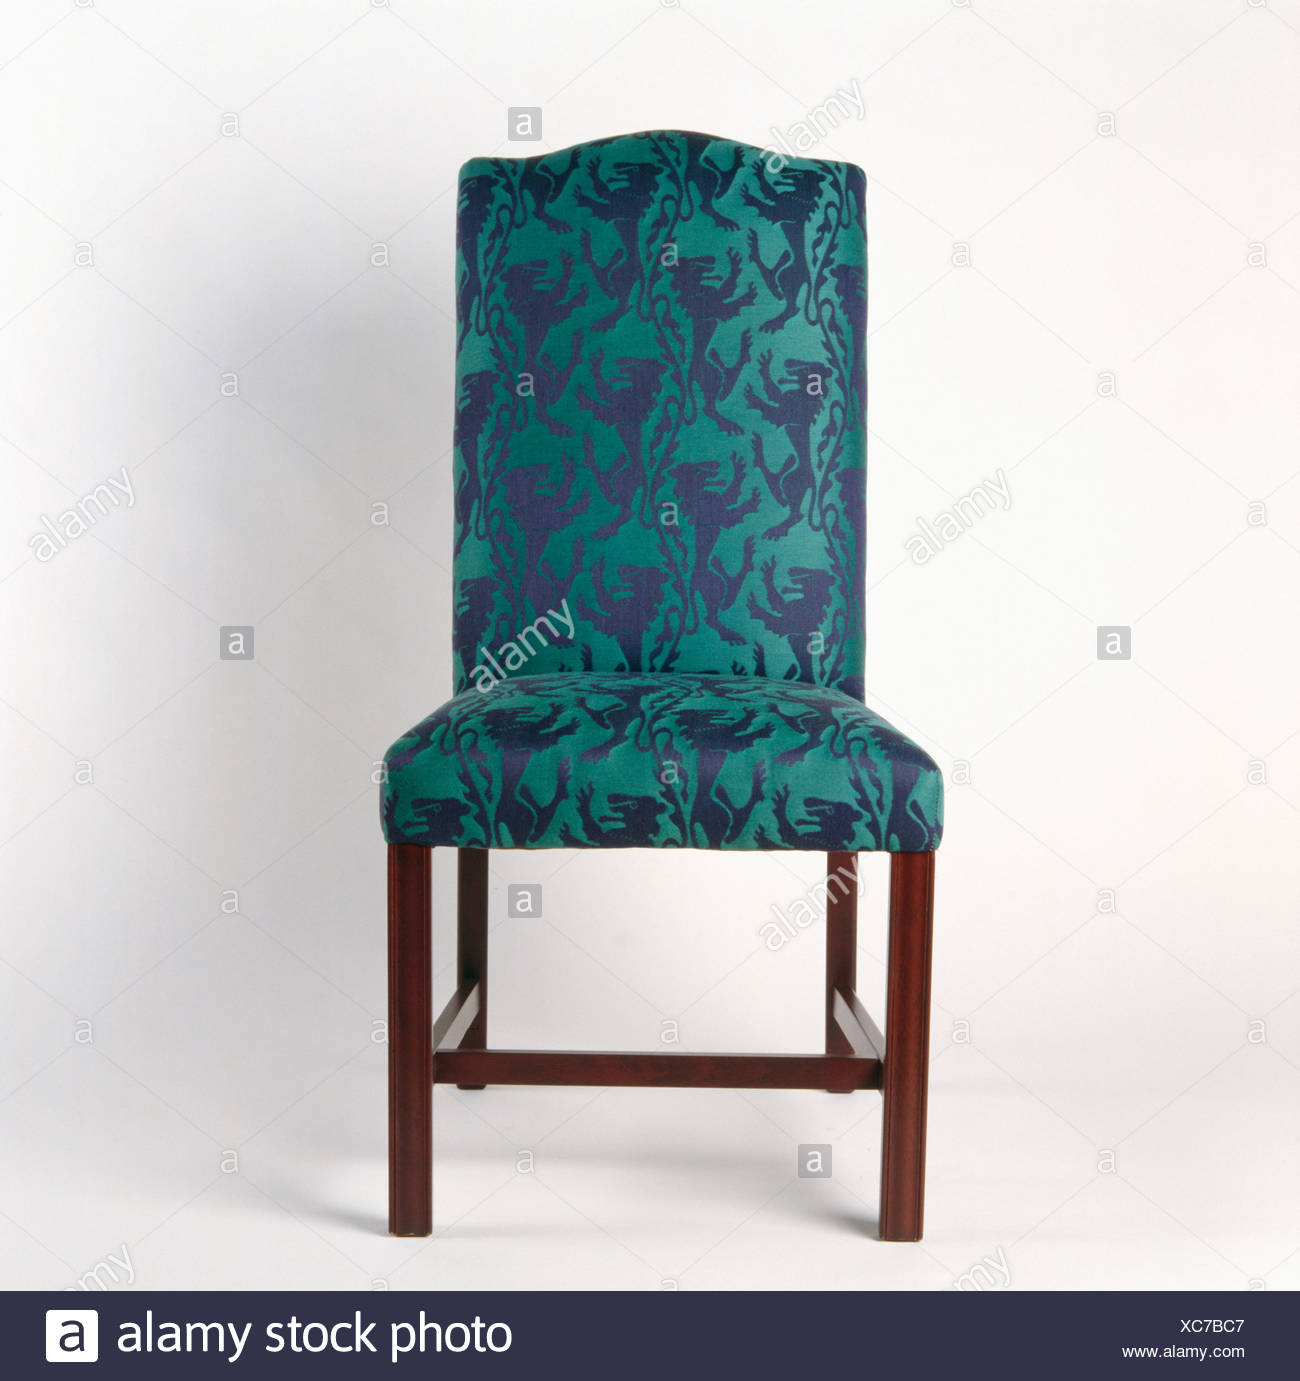 Green Upholstered Chair Close Up Of Green Blue Upholstered Chair Stock Photo 282904391